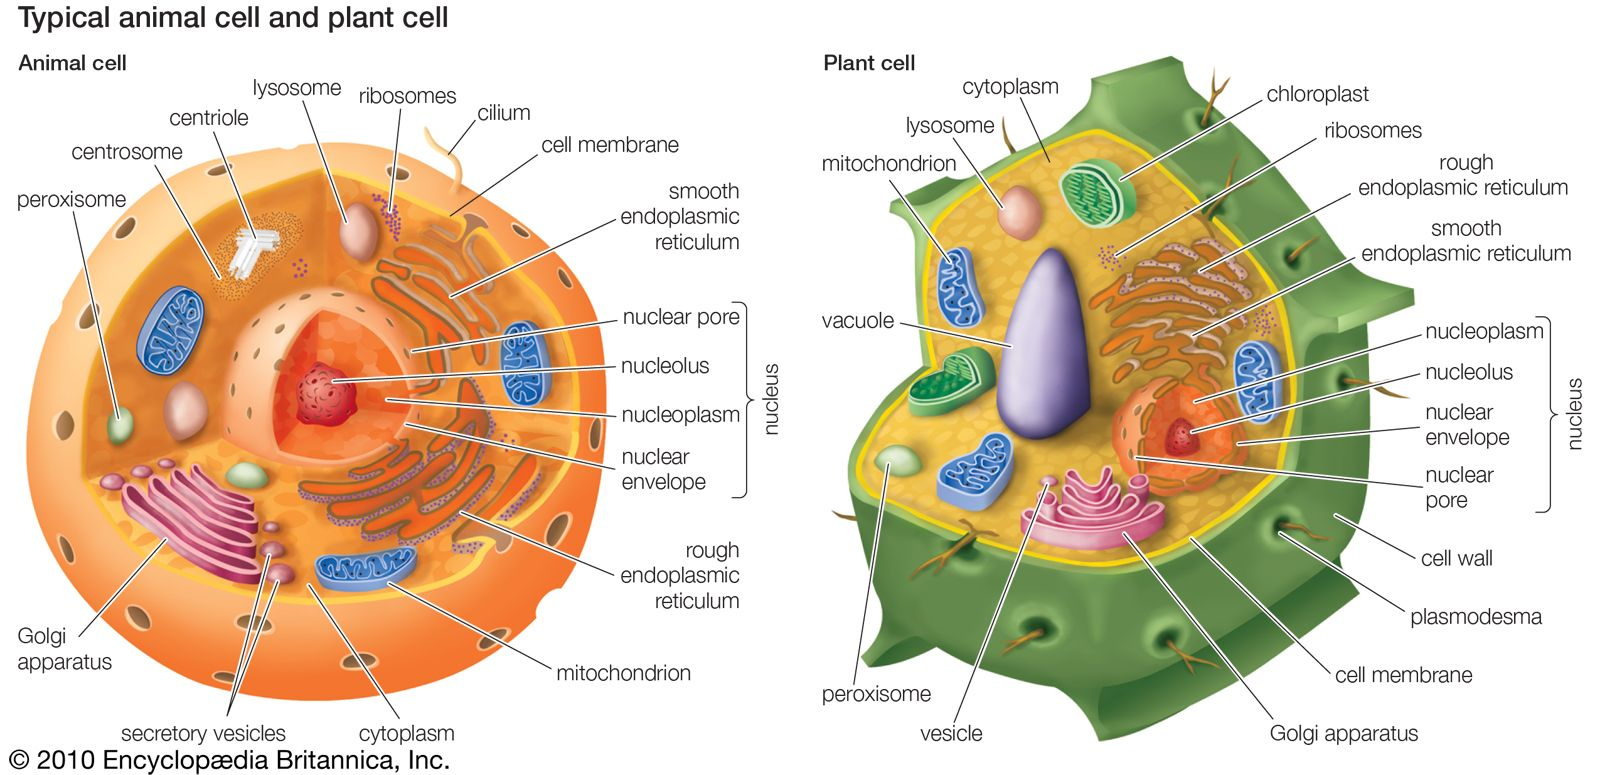 medium resolution of animal and plant cells world of sciencecraft achievements 6th plant cell diagram labeled animal cell diagram labeled human cell